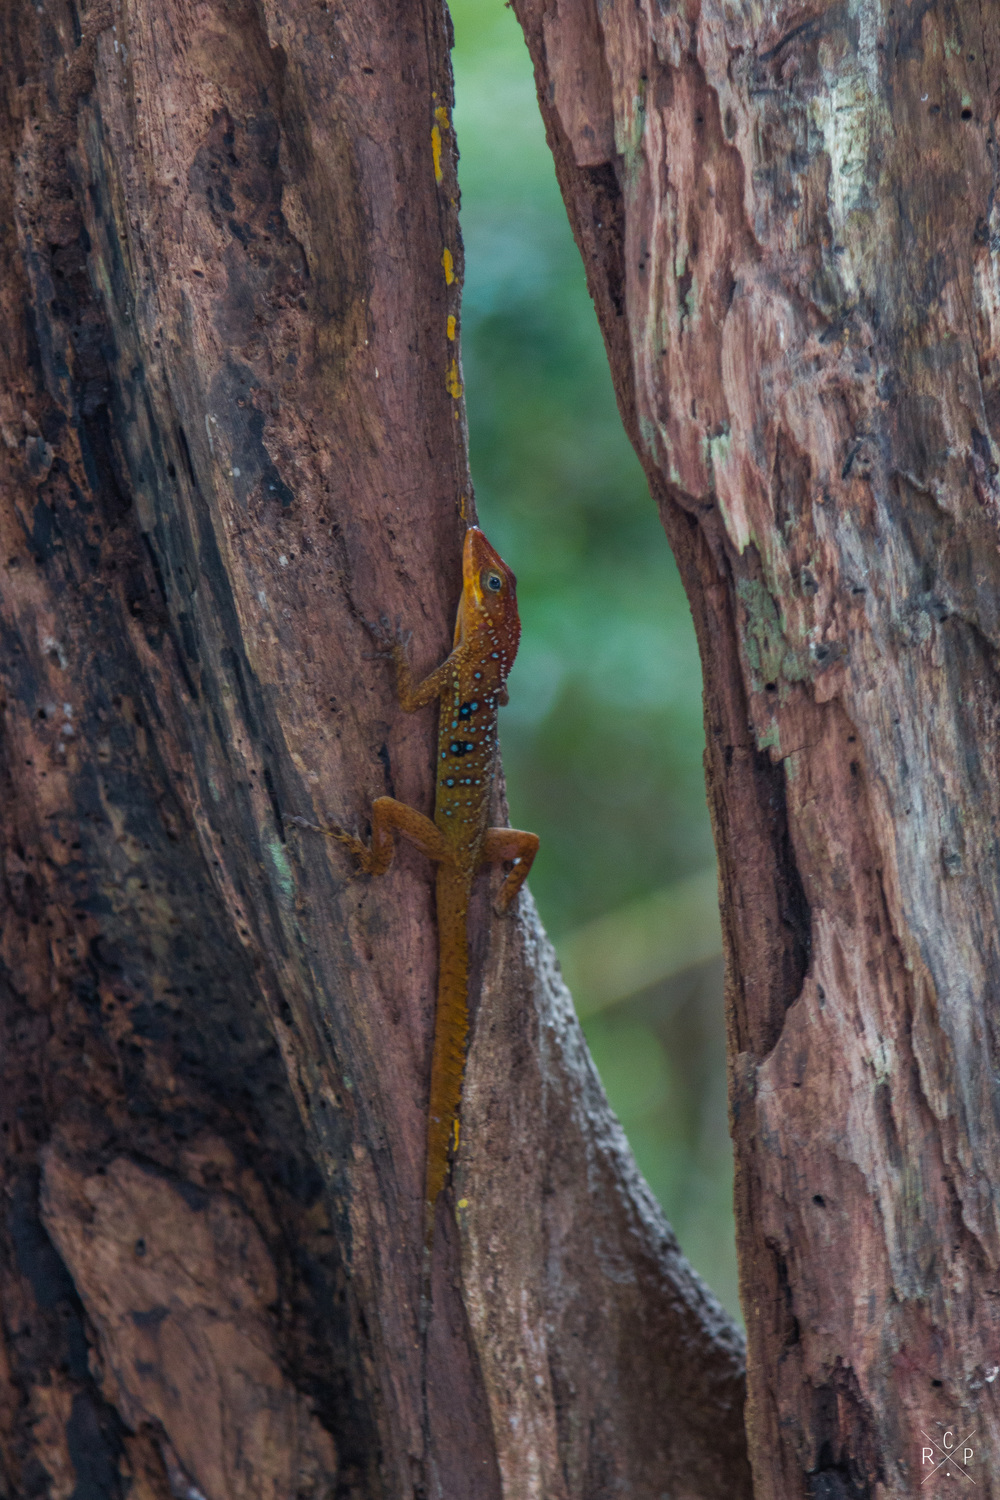 Chill Lizard - Indian River, Portsmouth, Dominica 10/03/2016